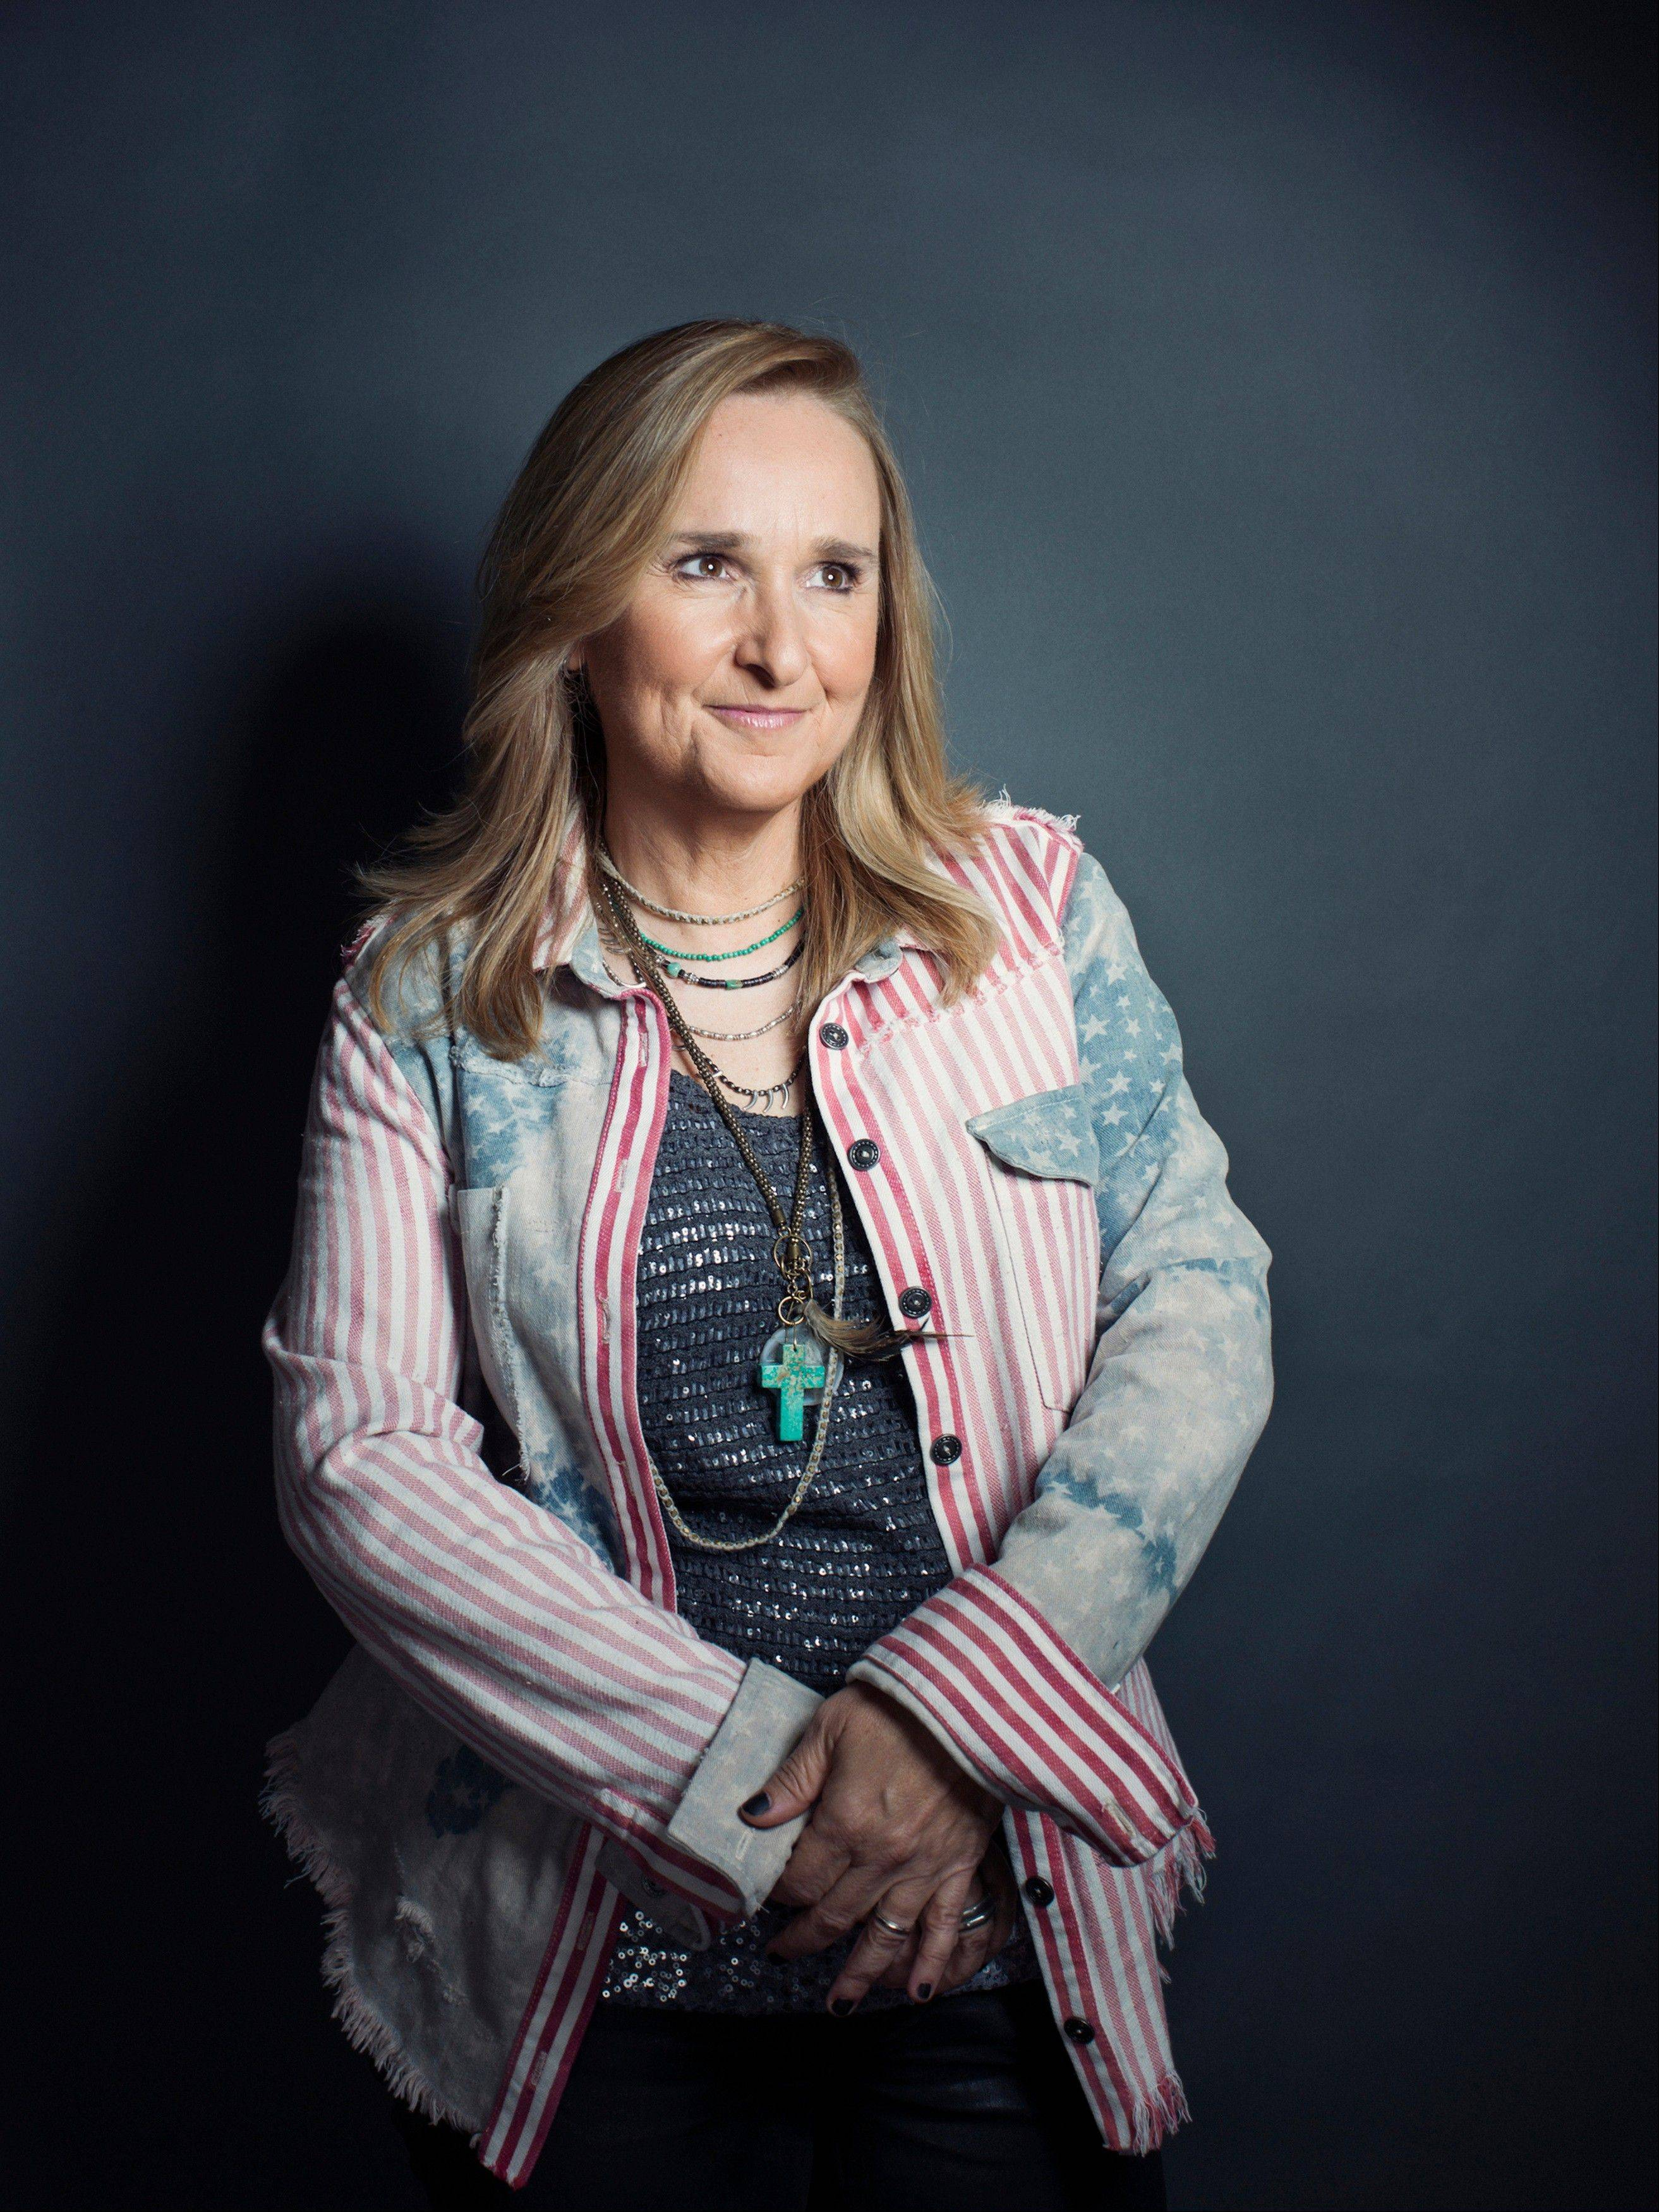 Singer-songwriter Melissa Etheridge comes to the Chicago Theatre on Saturday, Nov. 10, with her 4th Street Feeling Tour.